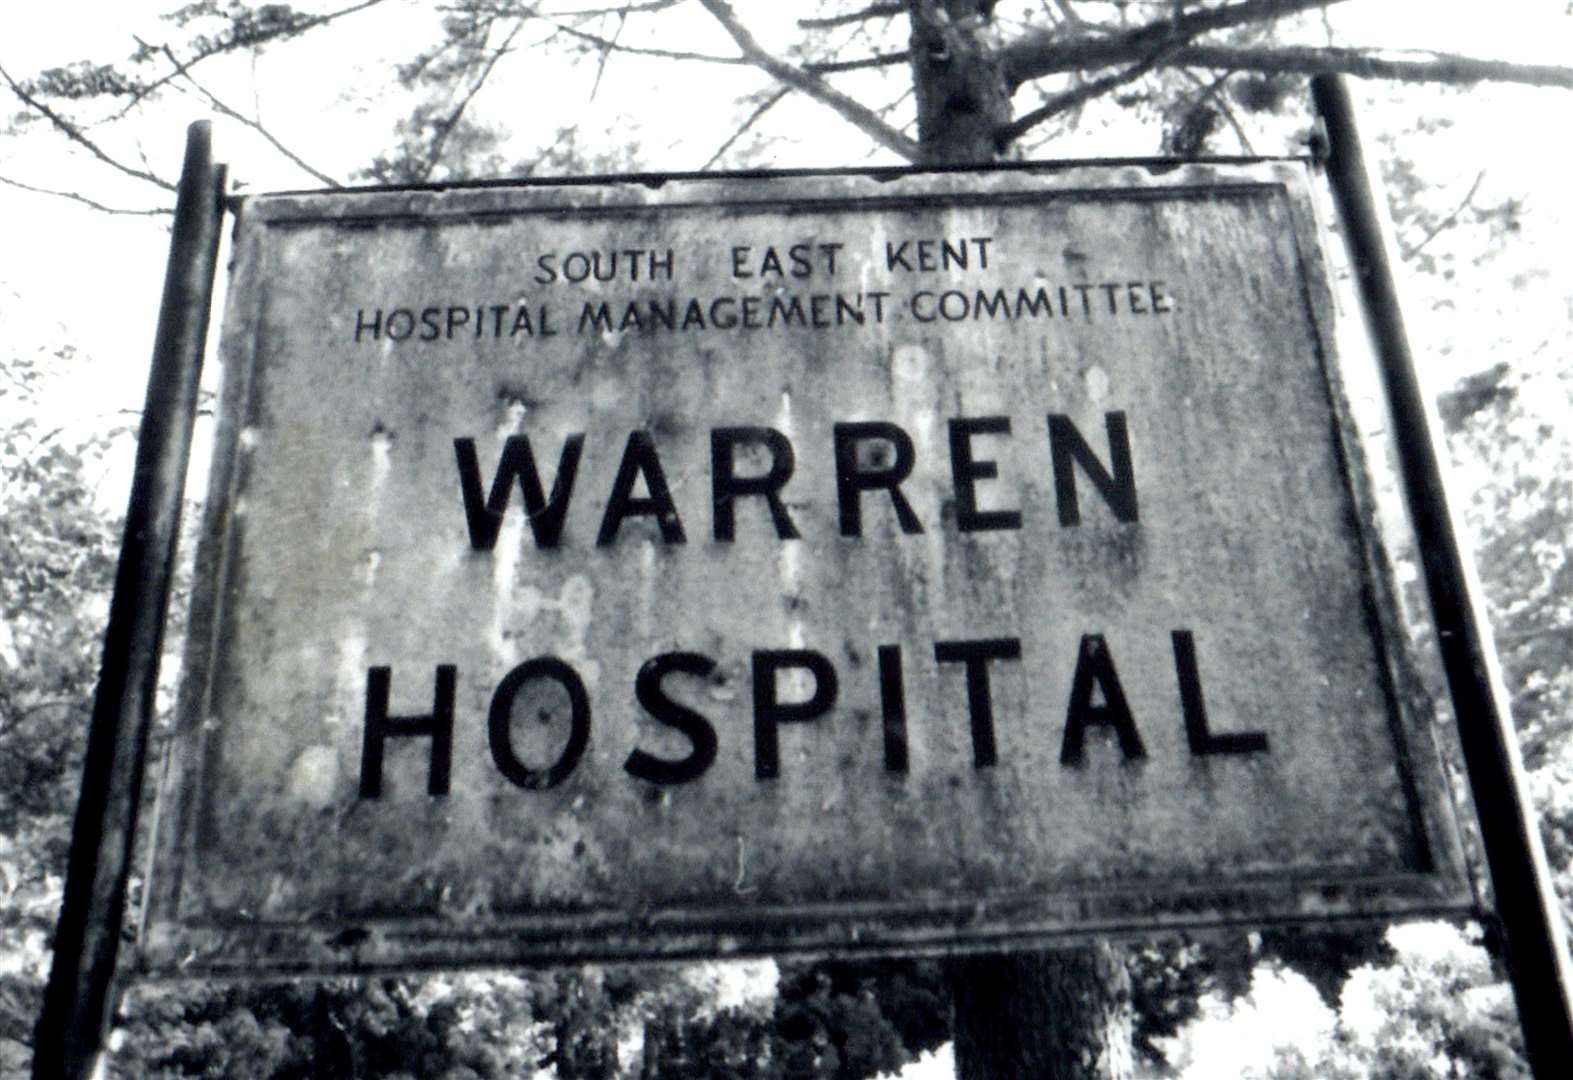 Are you living on an old hospital?